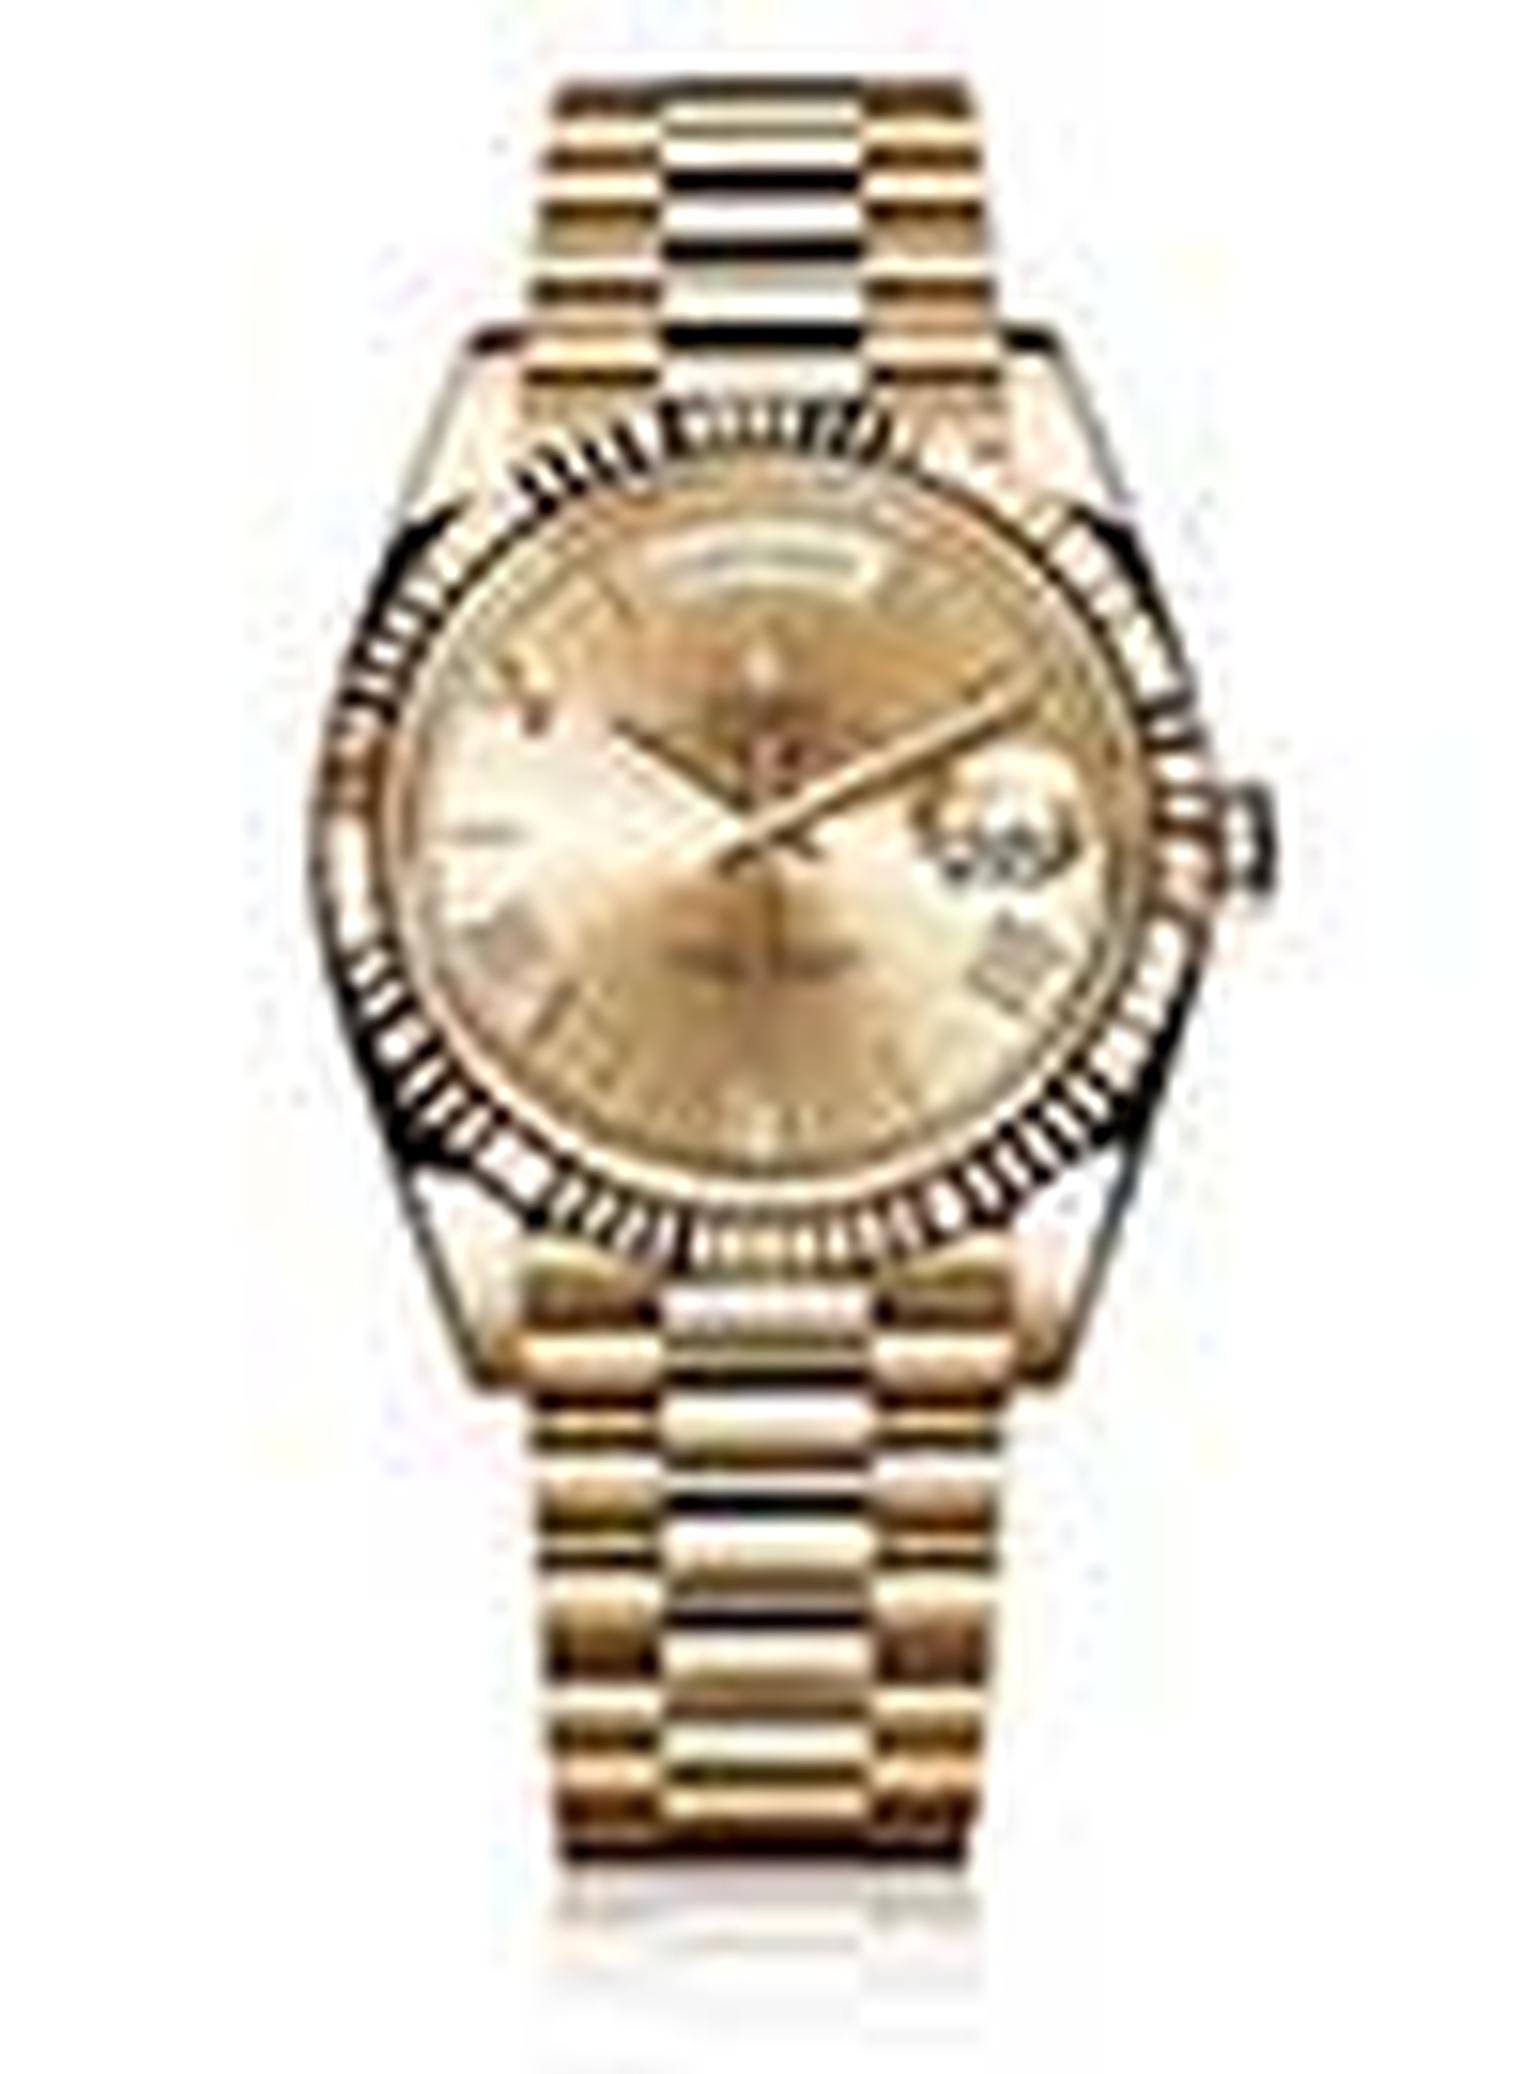 Rolex -watch -HP